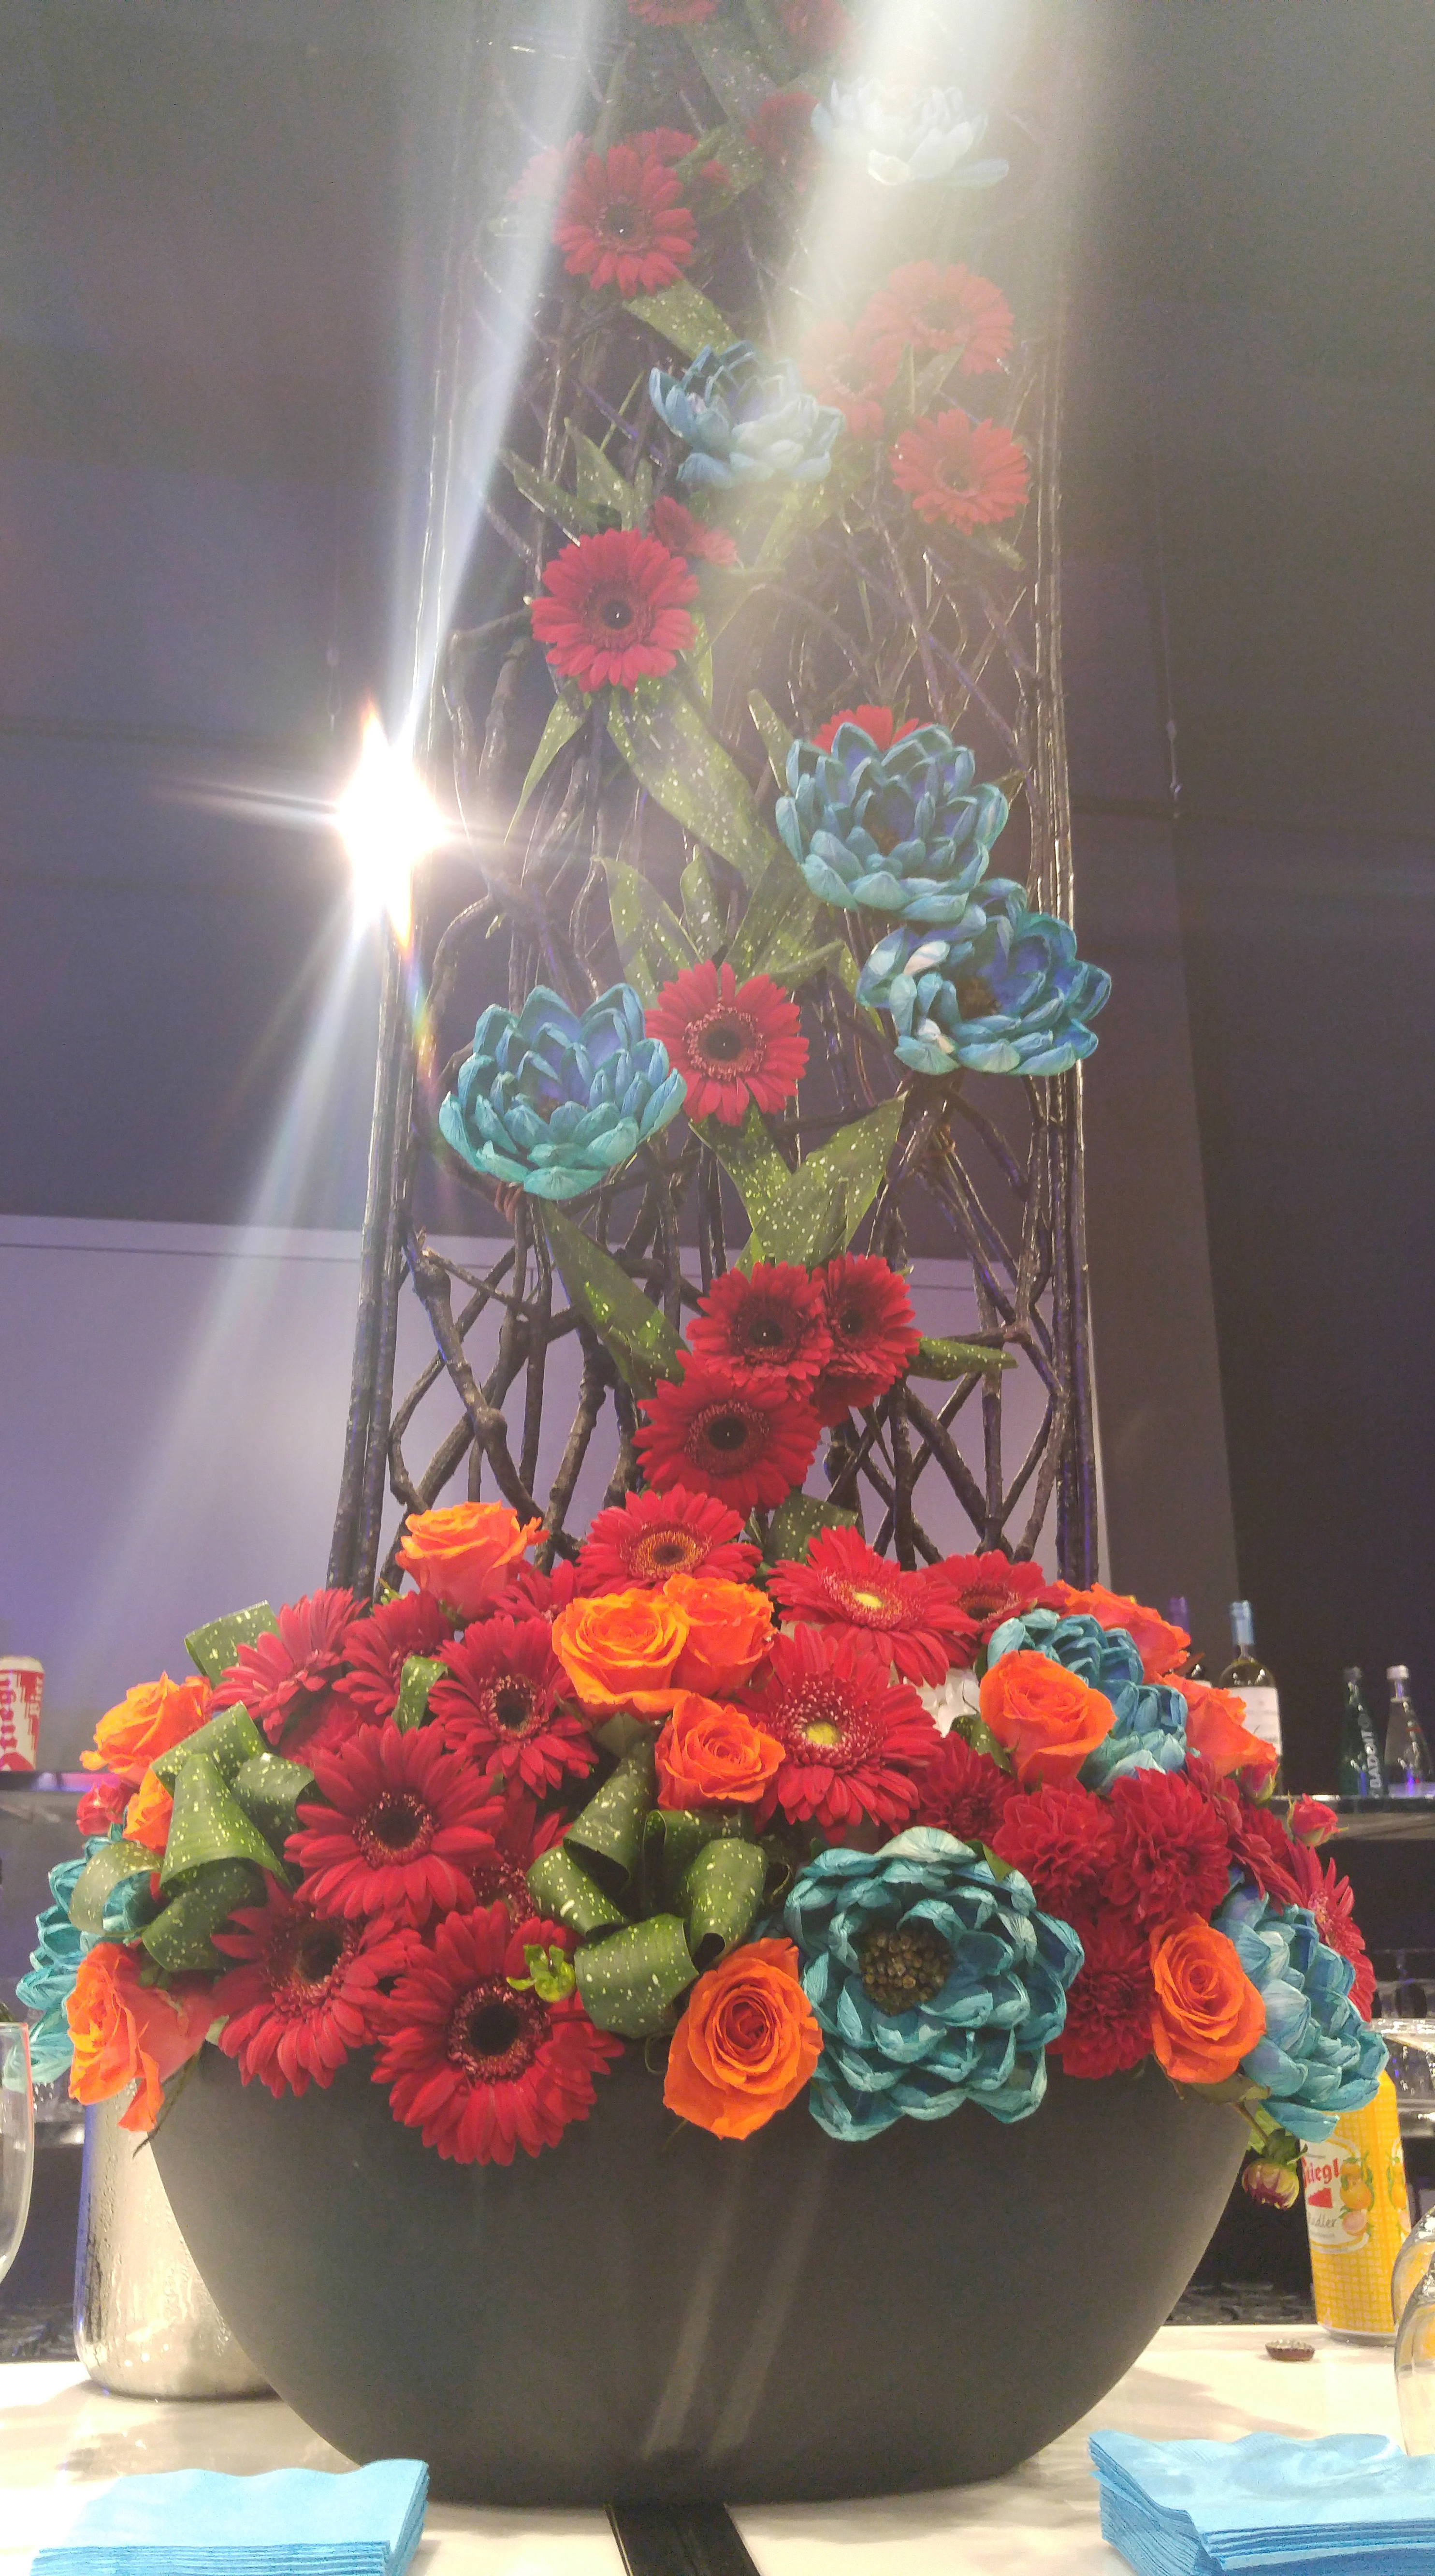 Opening night flowers by nicholas smith special events are to be remembered milestones in our lives celebrations and corporate functions our floral productions are carried out with memorable izmirmasajfo Images